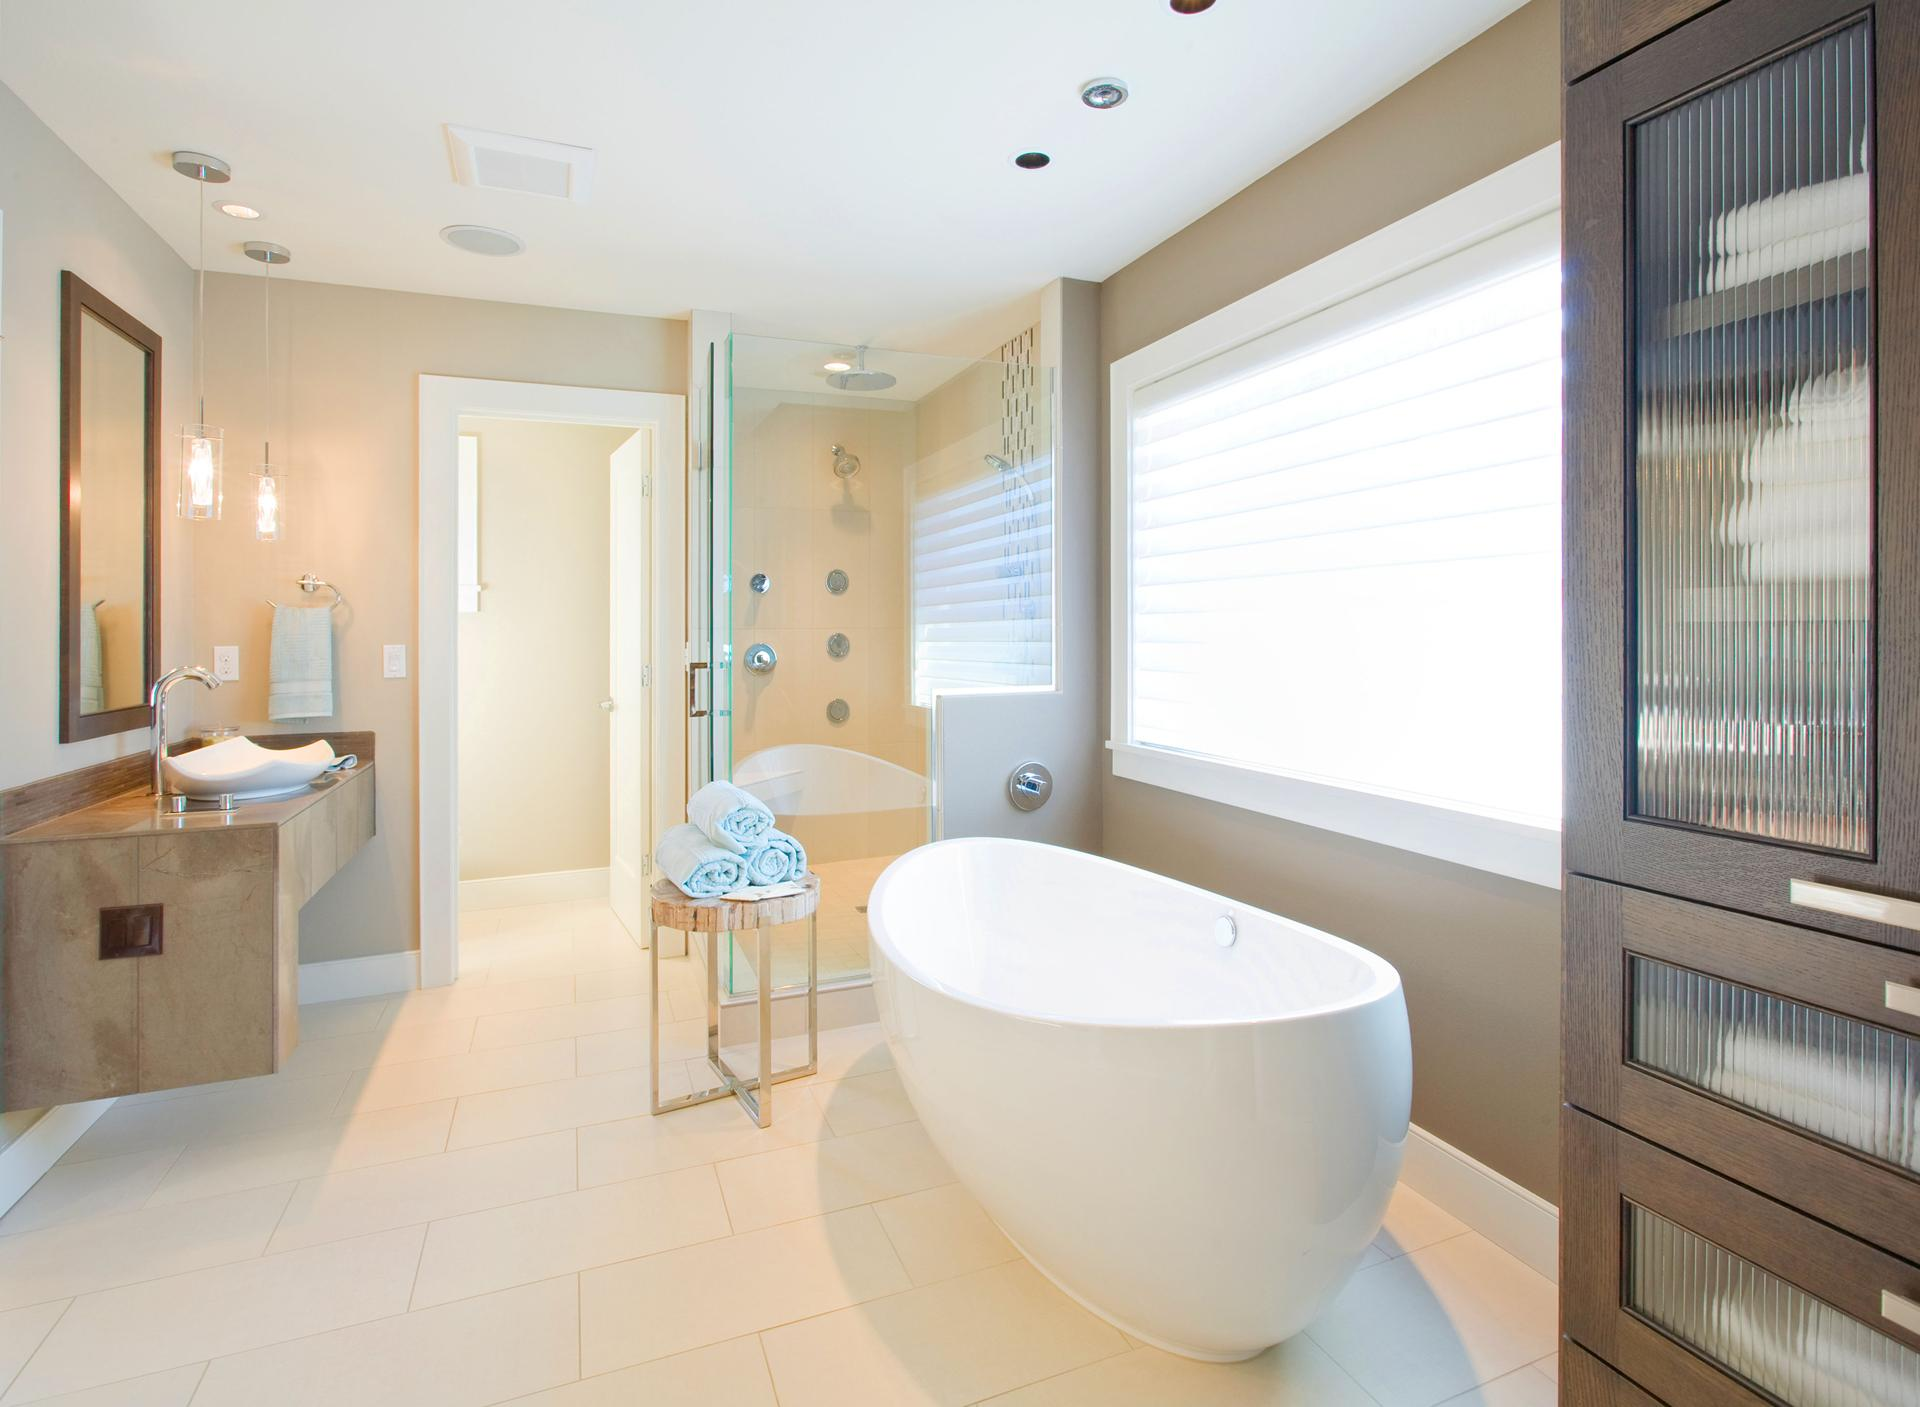 Bathroom Remodel Cost Boston is that renovation really worth it? - the boston globe